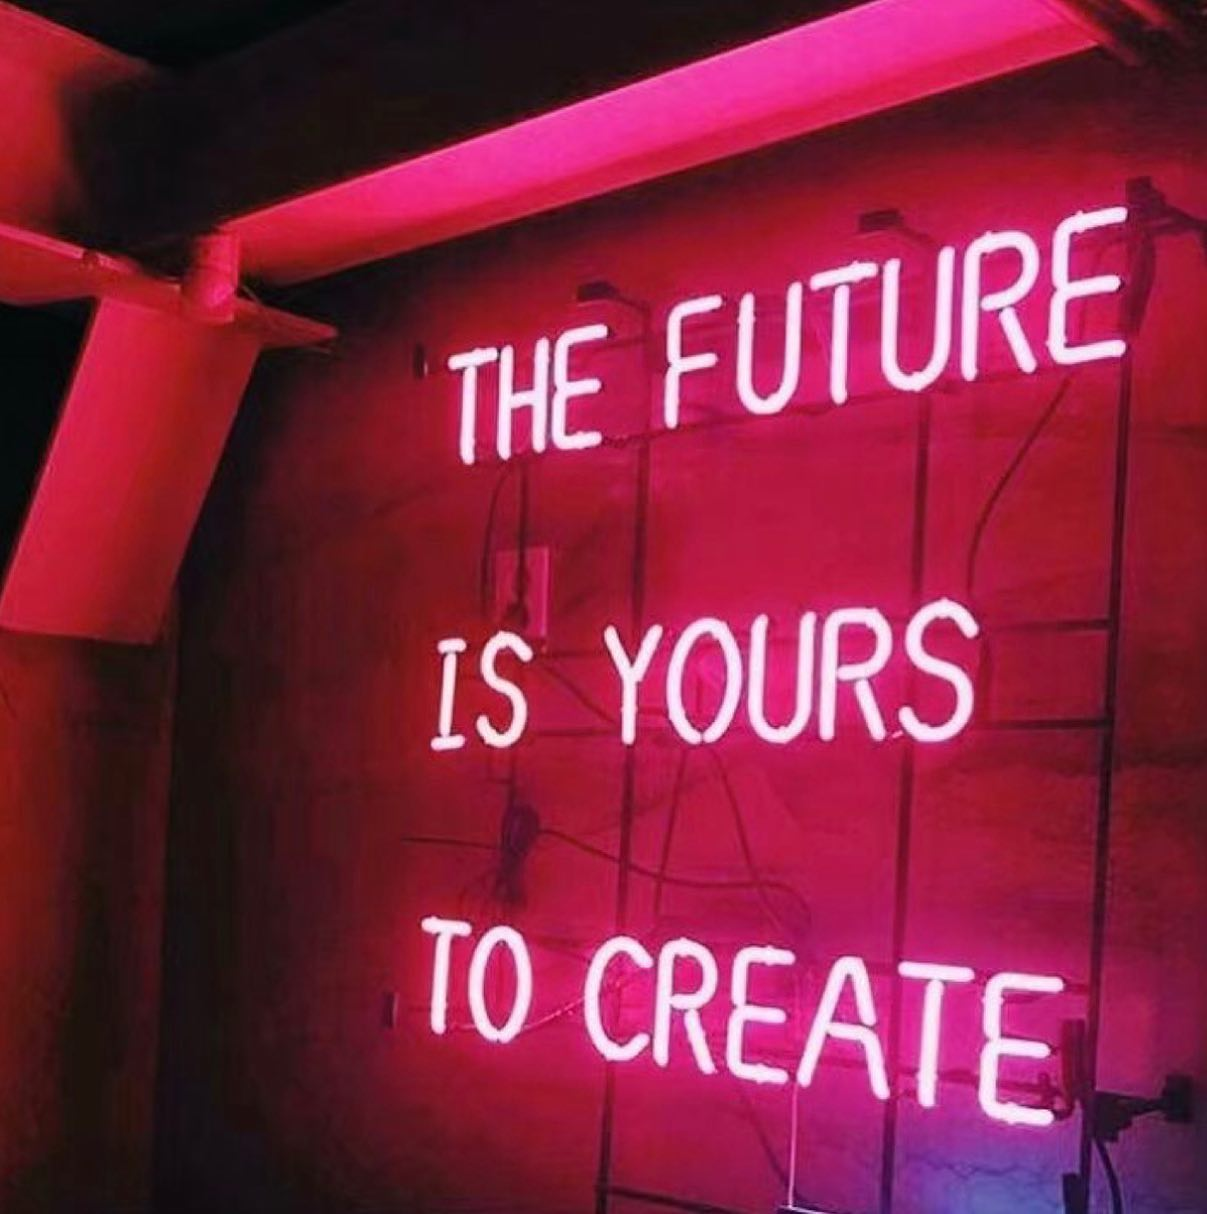 Your future is yours to decide and create - reach out to us at Wow Recruitment for advice on your future career. 02 8320 0683. #future #yourfuture #recruitment #career #love